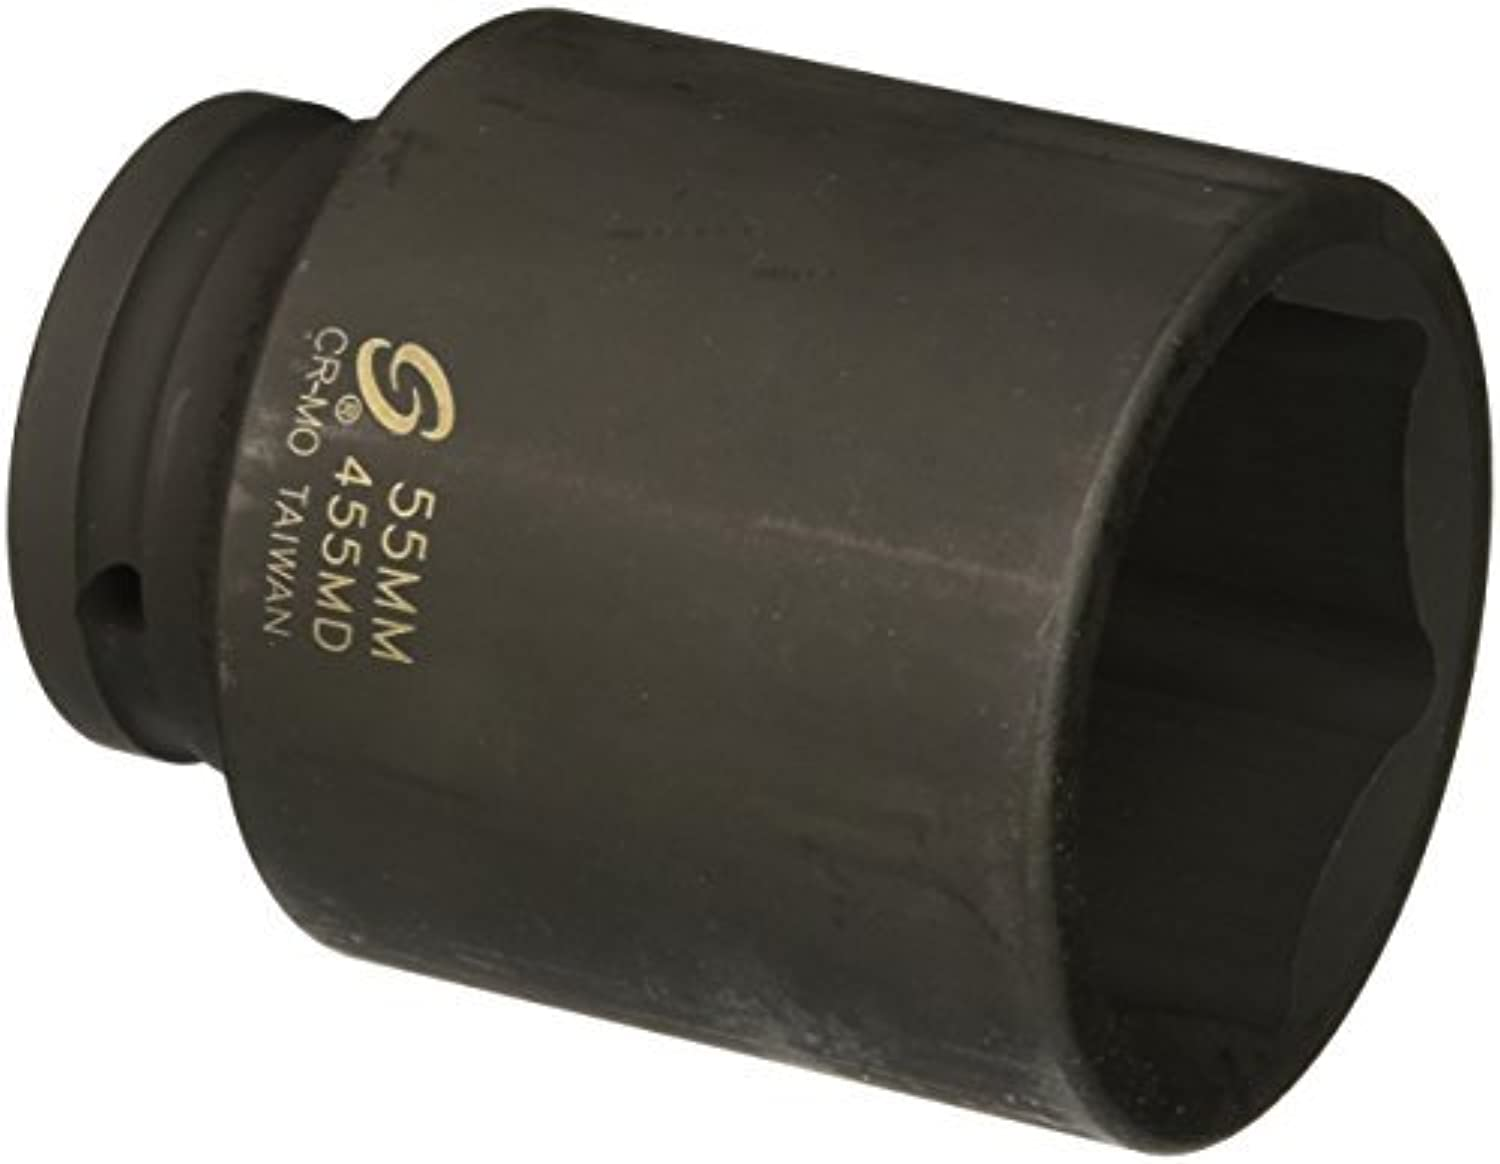 Sunex 455MD 3 3 3 4 Drive Deep 6 Point Metric Impact Socket 55mm by Sunex B01N55WSCS | Mangelware